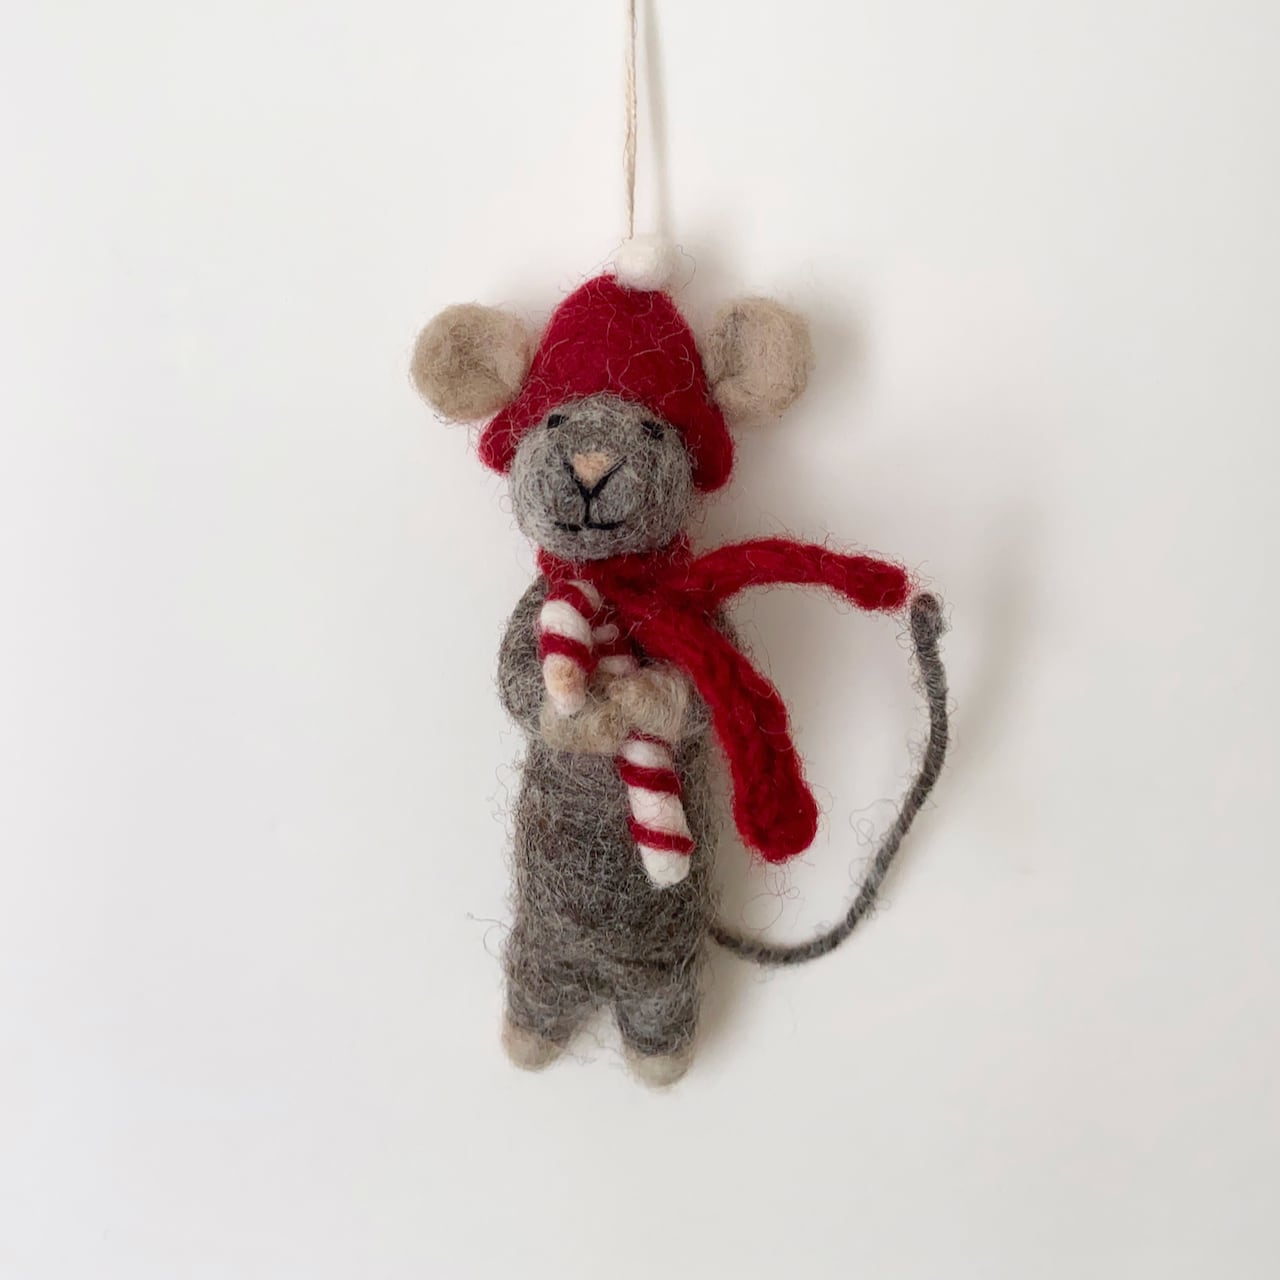 Grey Mouse with Candy Cane キャンディケインと灰色のマウス オーナメント